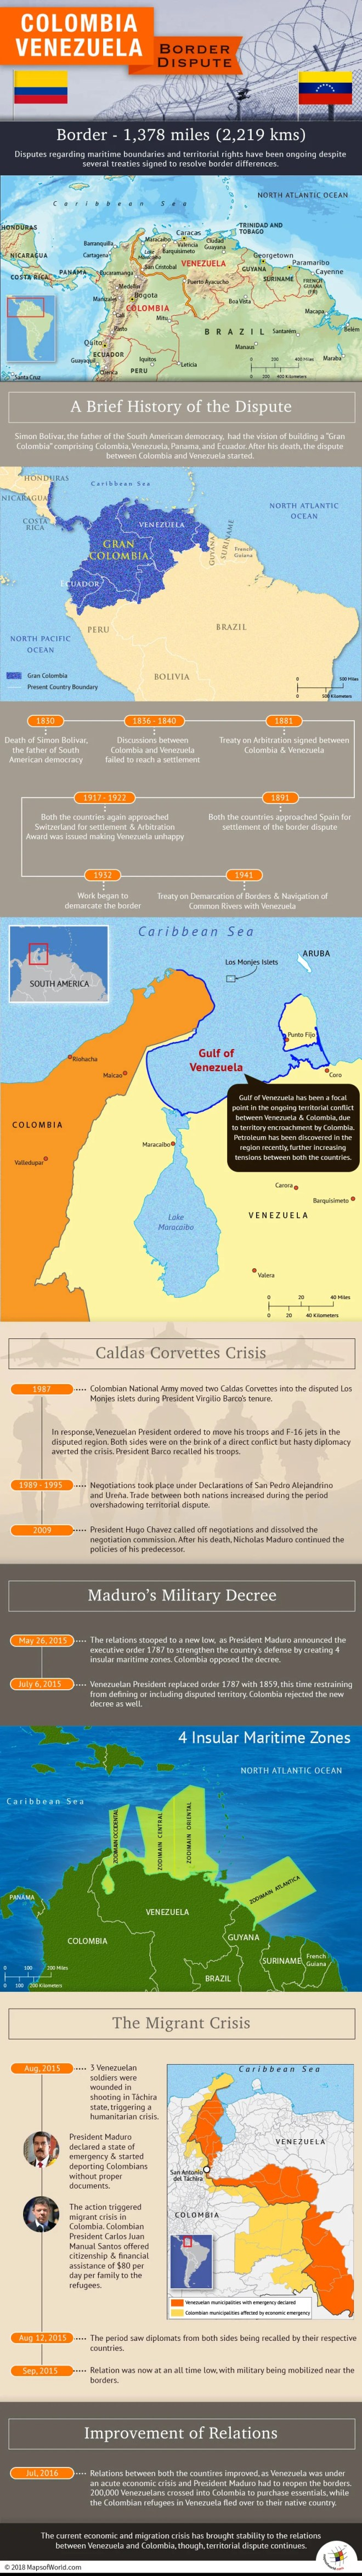 Infographic describing Colombia-Venezuela Border Dispute